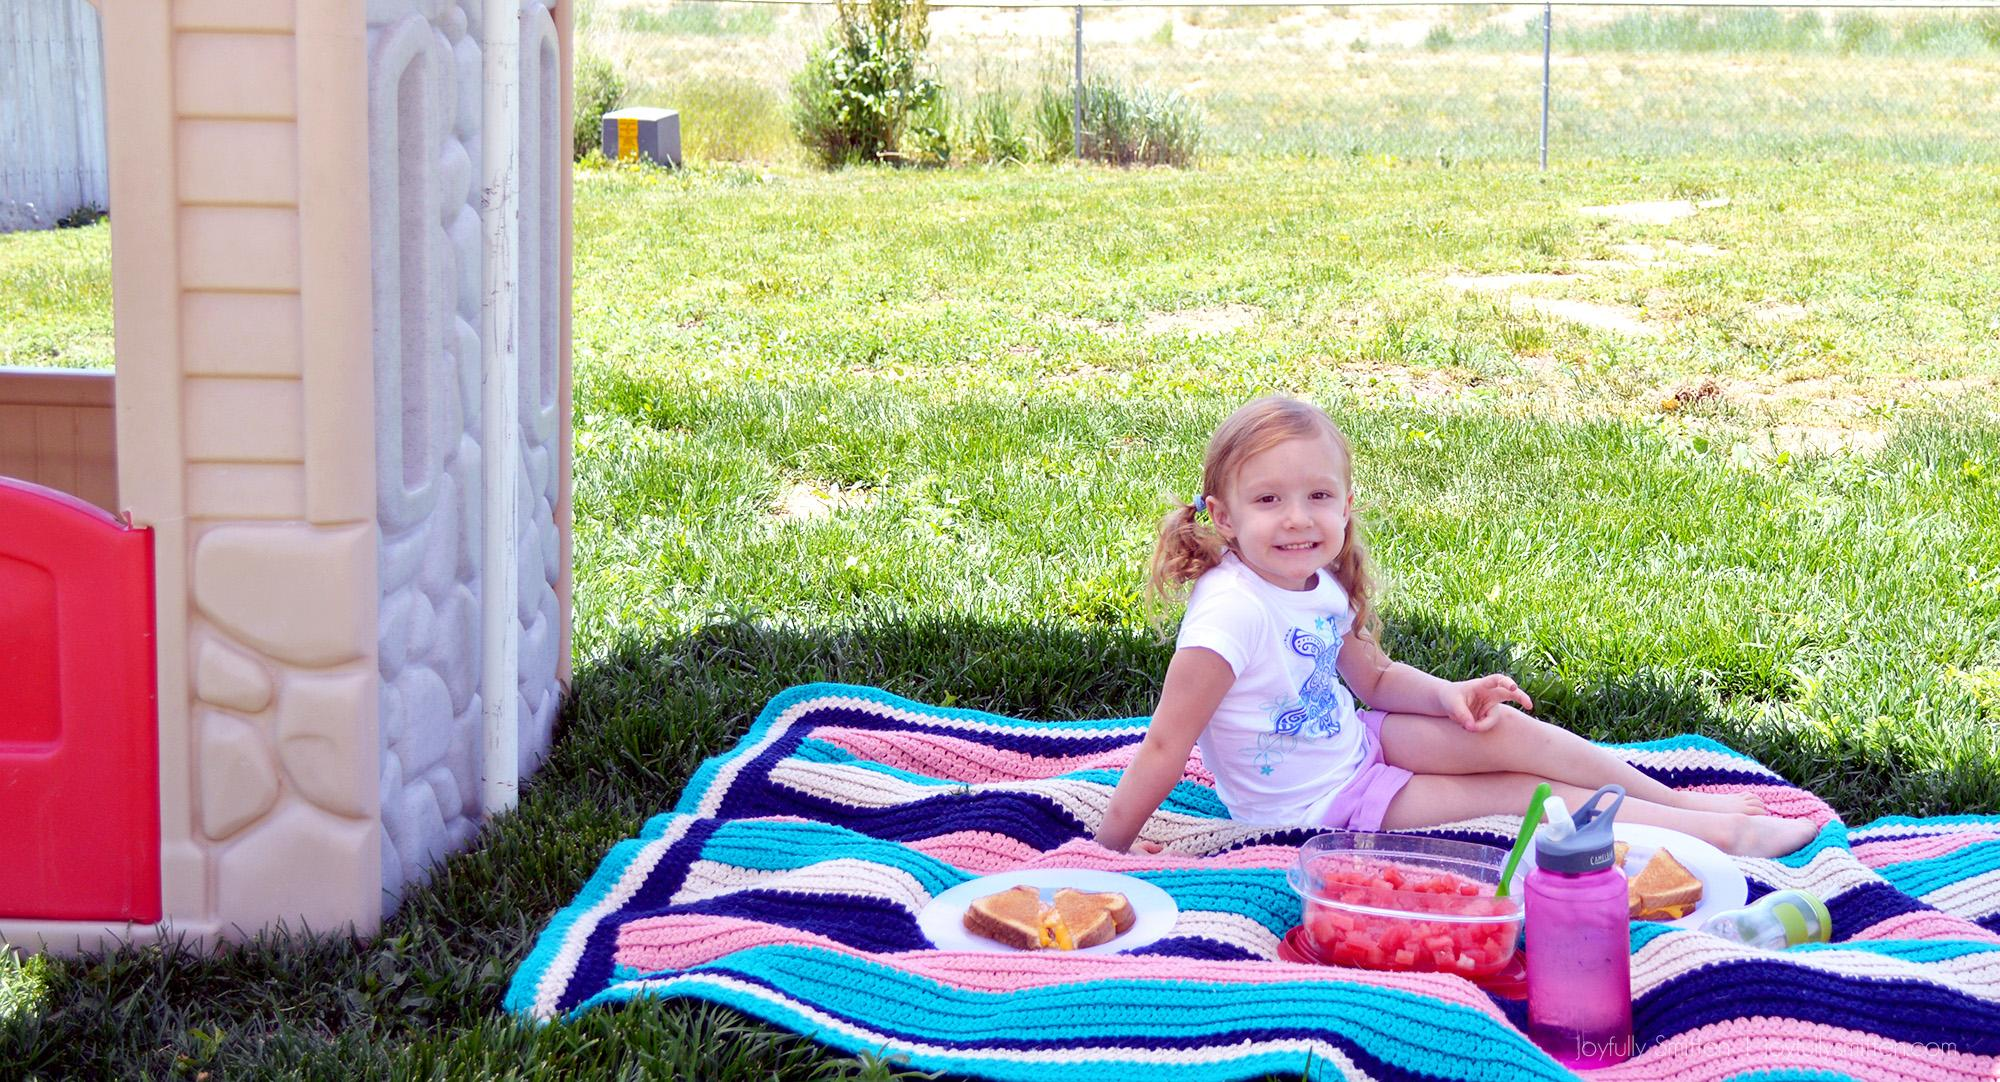 Del Sol - offering daily sunshine surprises - save 25% with JOYFUL